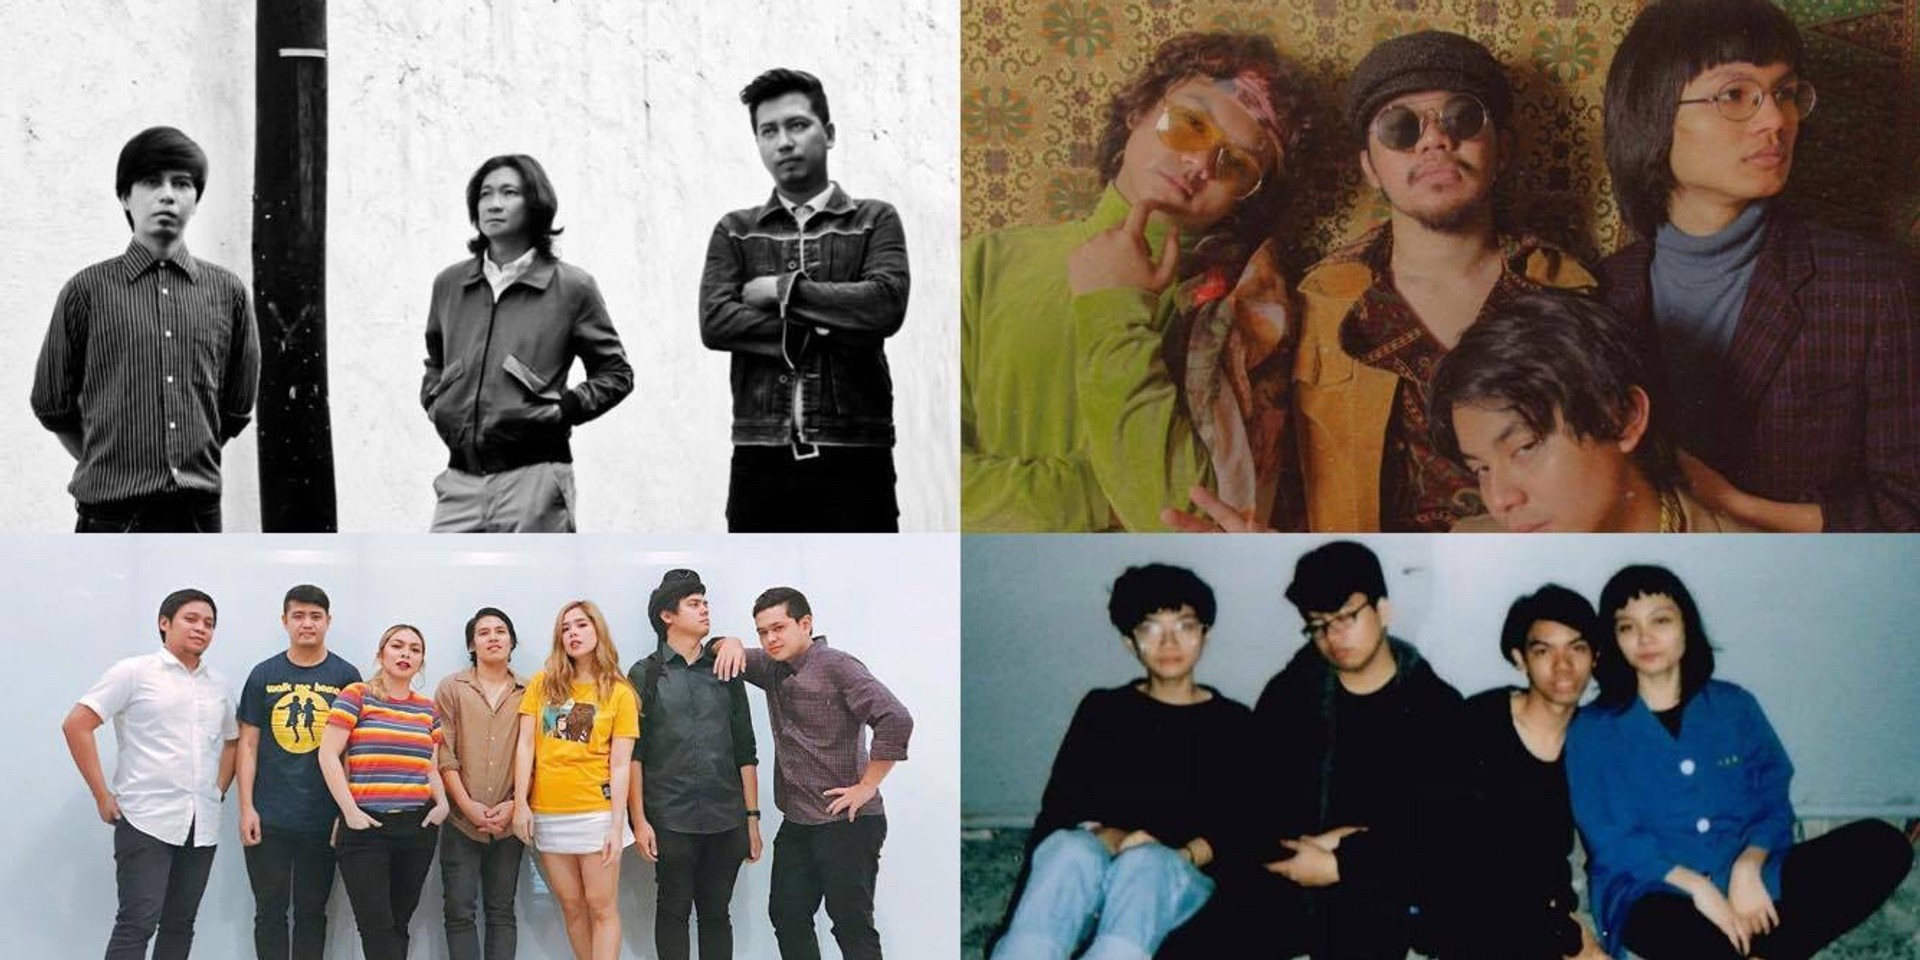 The Rest is Noise unveils final line-up for year end gig